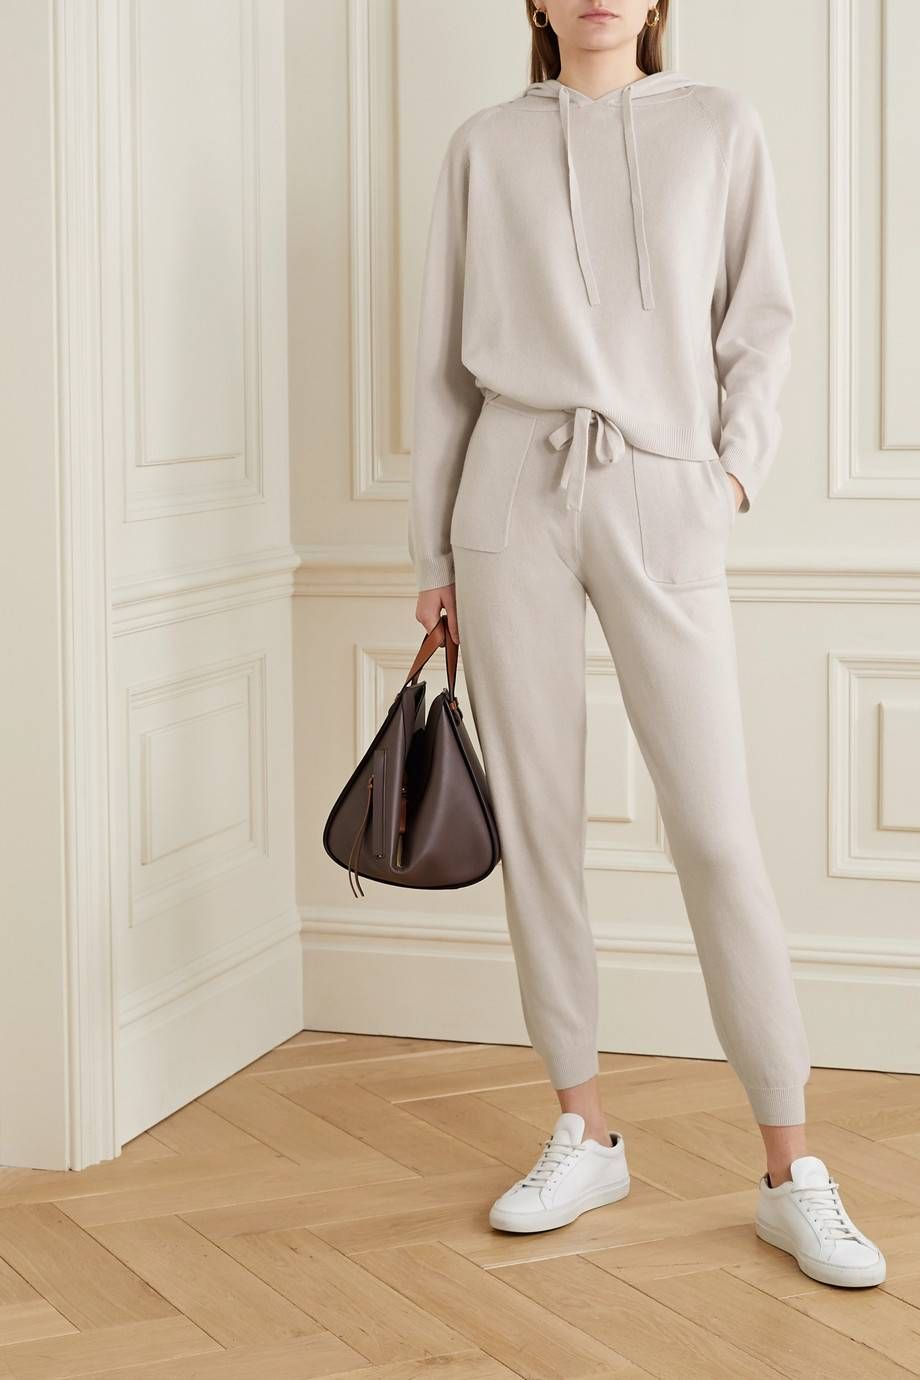 3 Chic Work-From-Home Outfits That Balance Comfort and Confidence – Sewing fashion